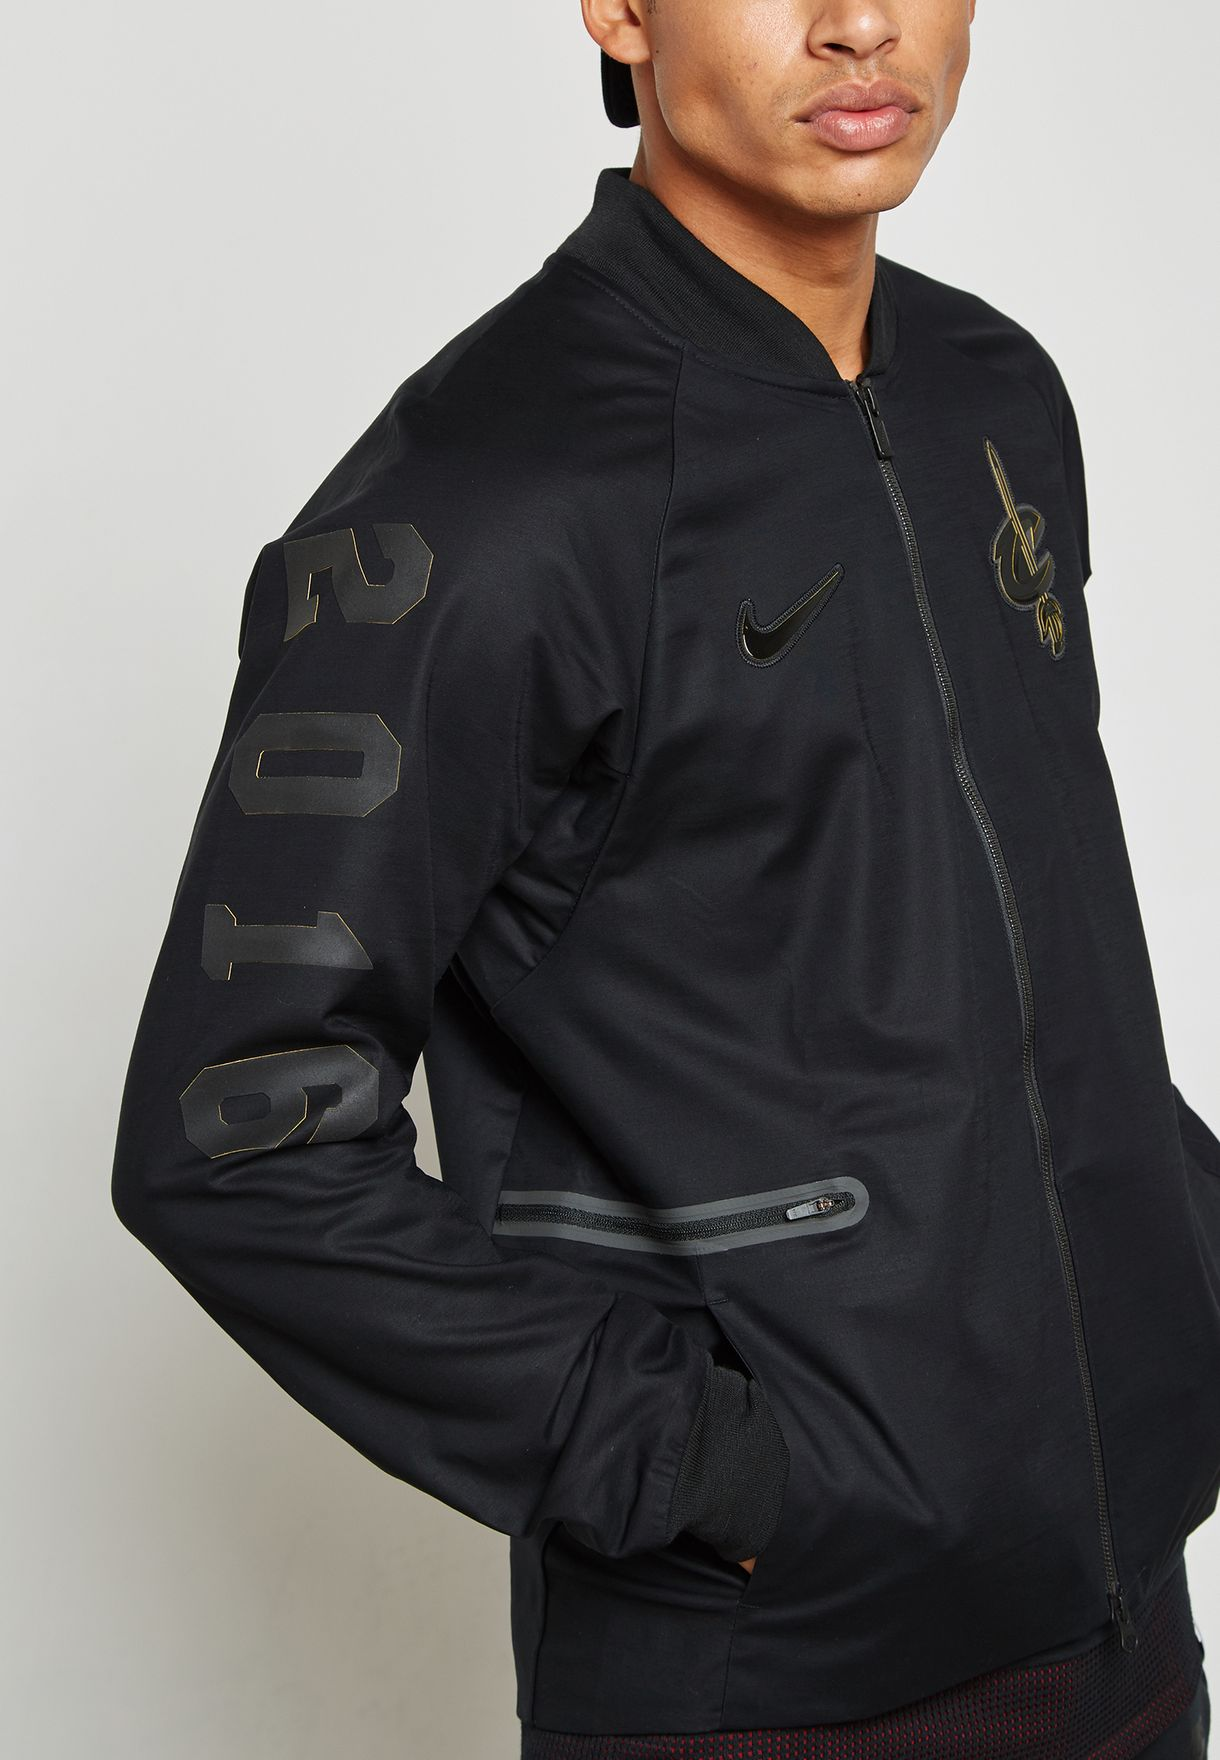 Tropezón Alfabeto Durante ~  Buy Nike black Cleveland Cavaliers Varsity Jacket for Men in Kuwait city,  other cities | 860791-010